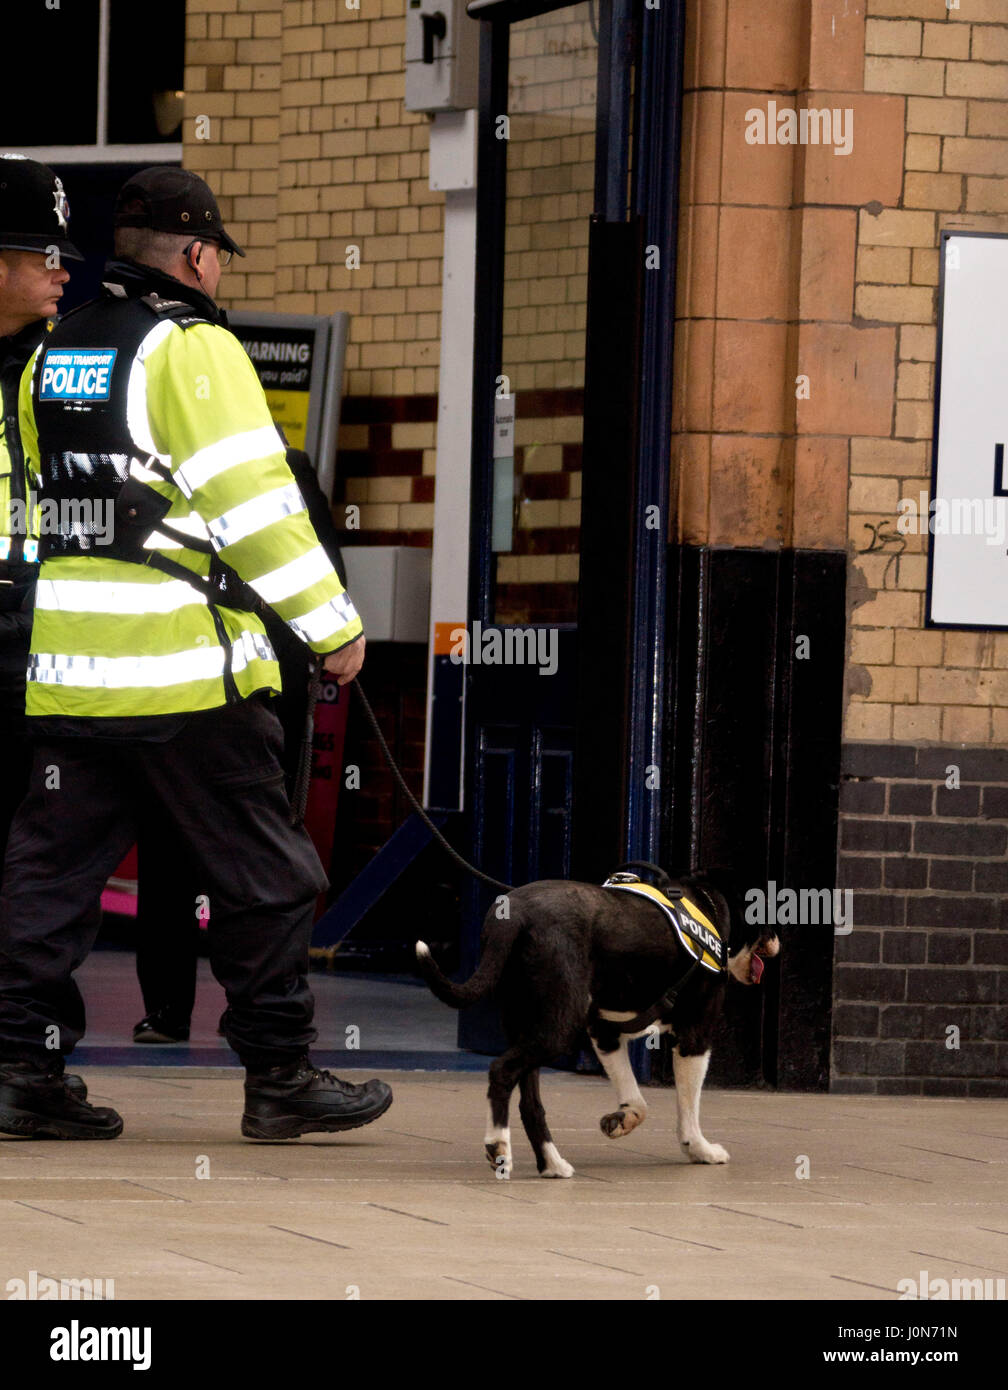 Leicester, UK. Thursday 13th April 2017. Police carring out their final check before Her Majesty Queen Elizabeth - Stock Image